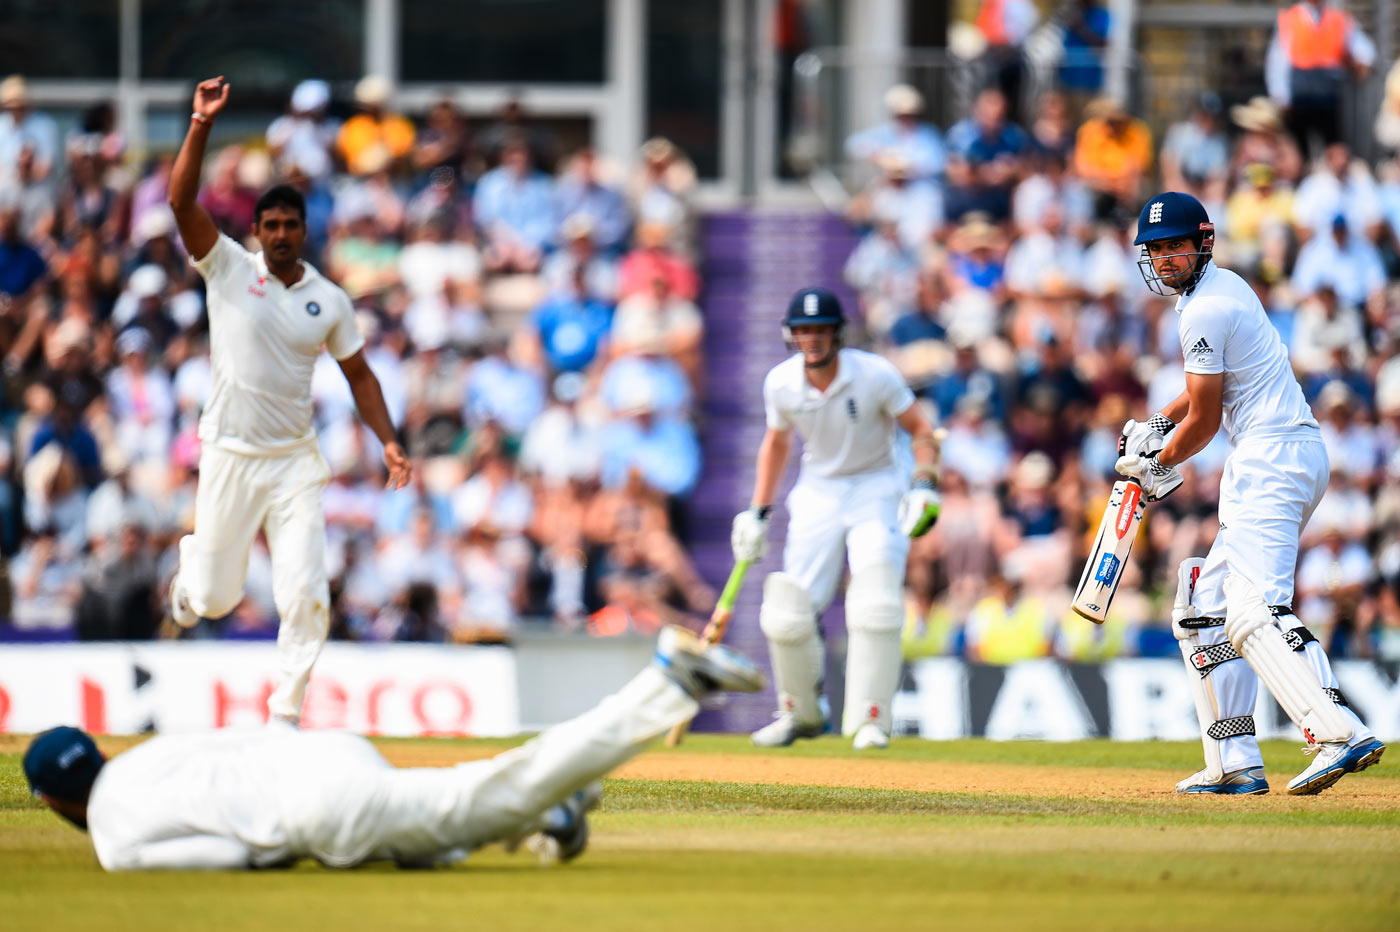 kapil drops viv the cricket monthly espn cricinfo from sir love the drop by jadeja that turned the tide for alastair cook